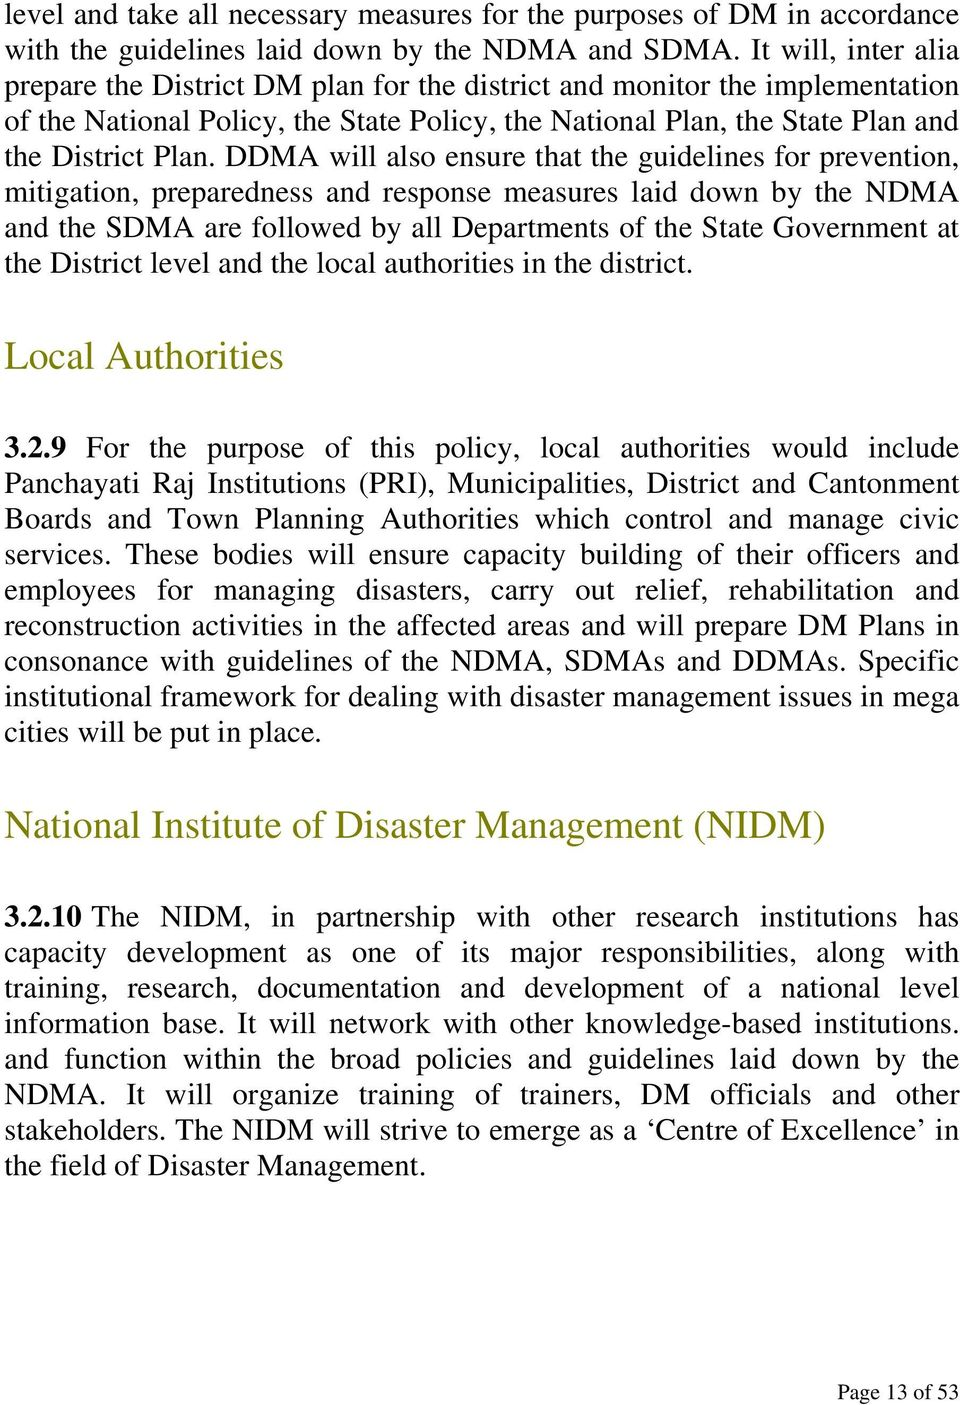 DDMA will also ensure that the guidelines for prevention, mitigation, preparedness and response measures laid down by the NDMA and the SDMA are followed by all Departments of the State Government at